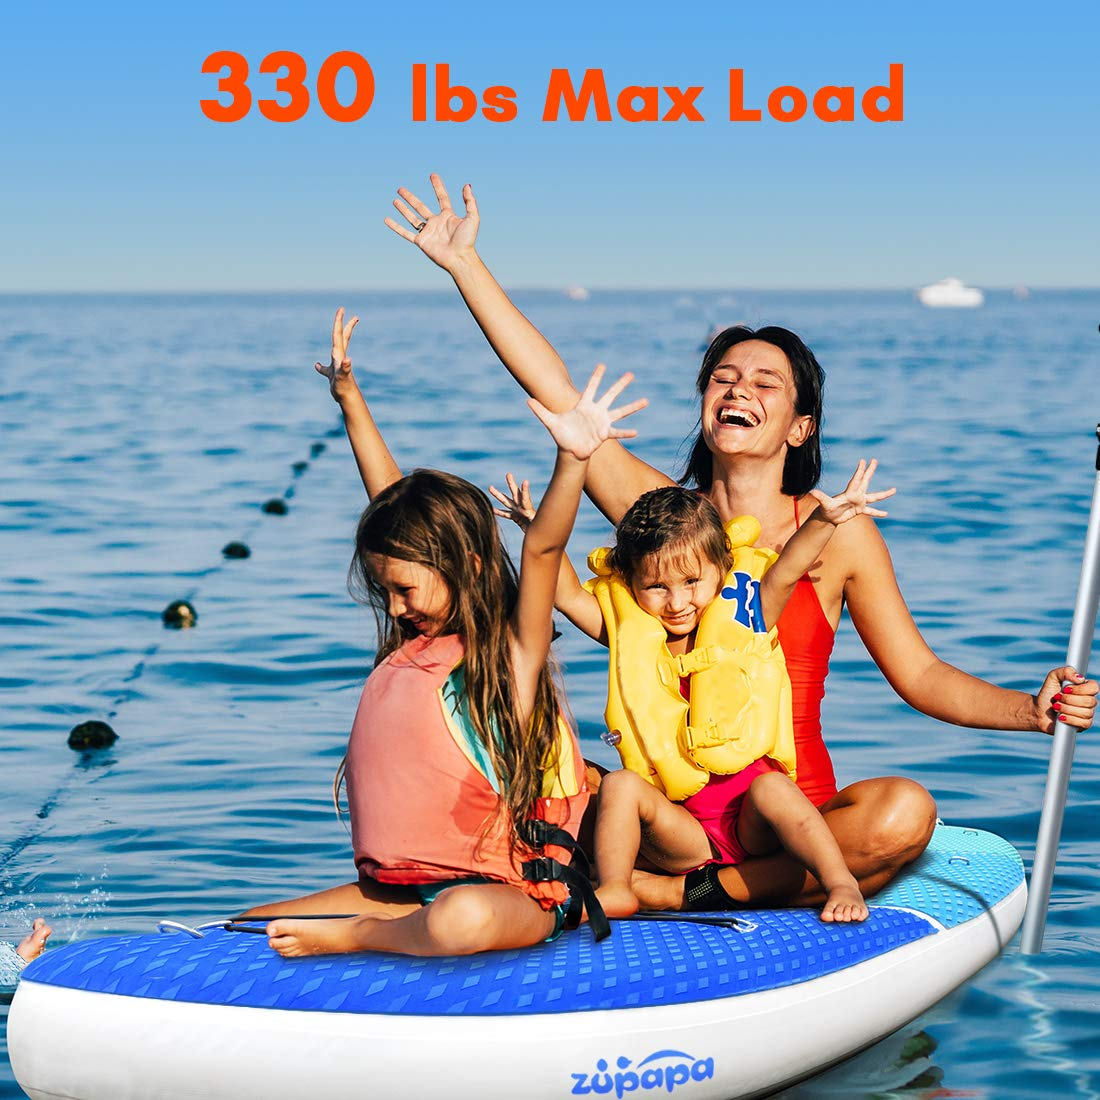 Zupapa Upgrade Inflatable Stand Up Paddle Board 6 Inch Thick 10 11 FT Kayak Convertible All Accessories Included